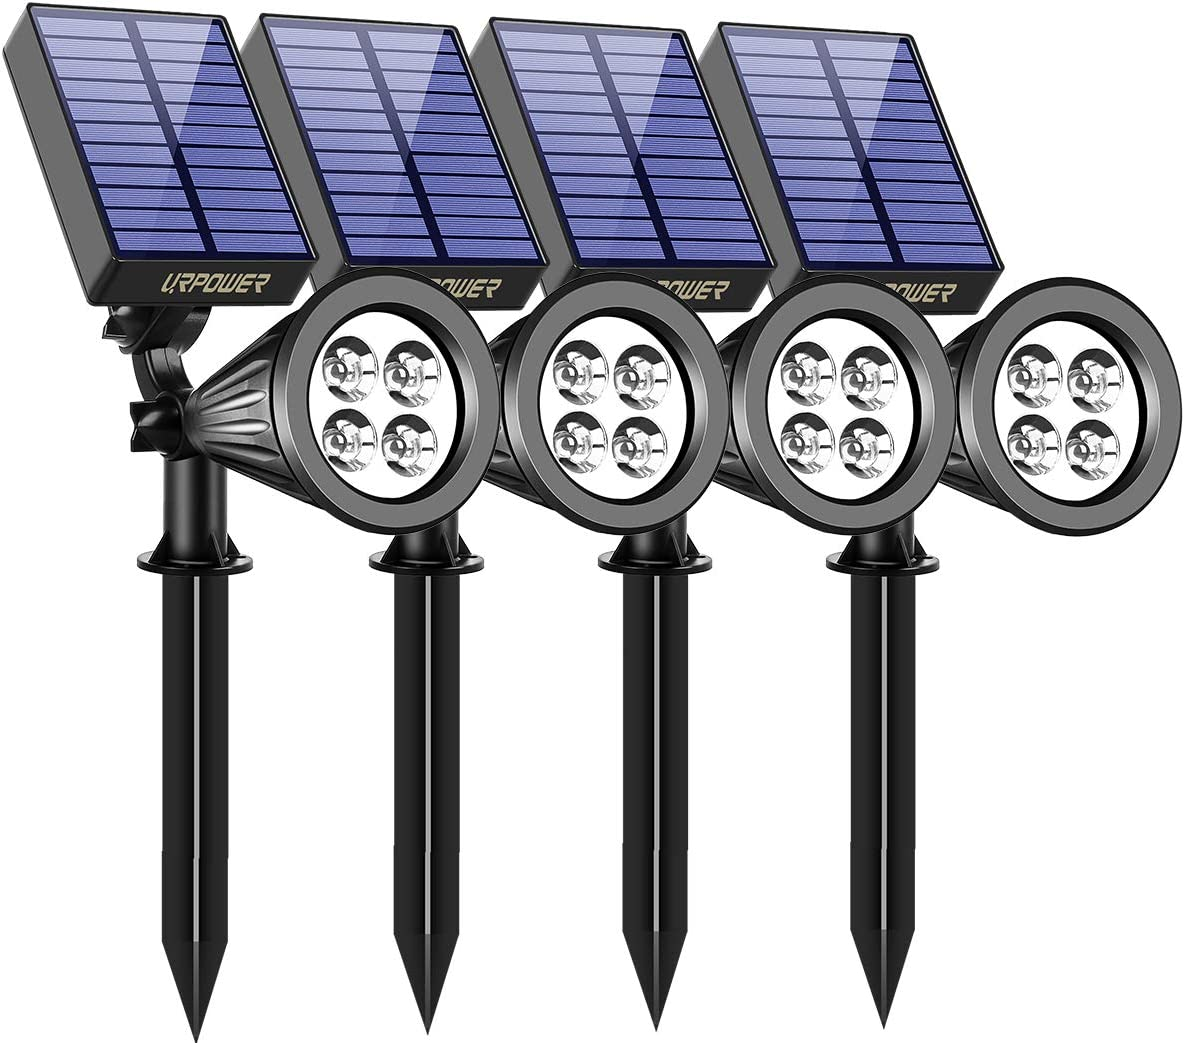 URPOWER Solar Lights Waterproof Solar Lights Outdoor 2-in-1 Adjustable Solar Spotlight Wall Light Auto On Off Solar-Powered Landscape Lighting for Garden Yard Pathway Swimming Pool 4Pack-Cool White